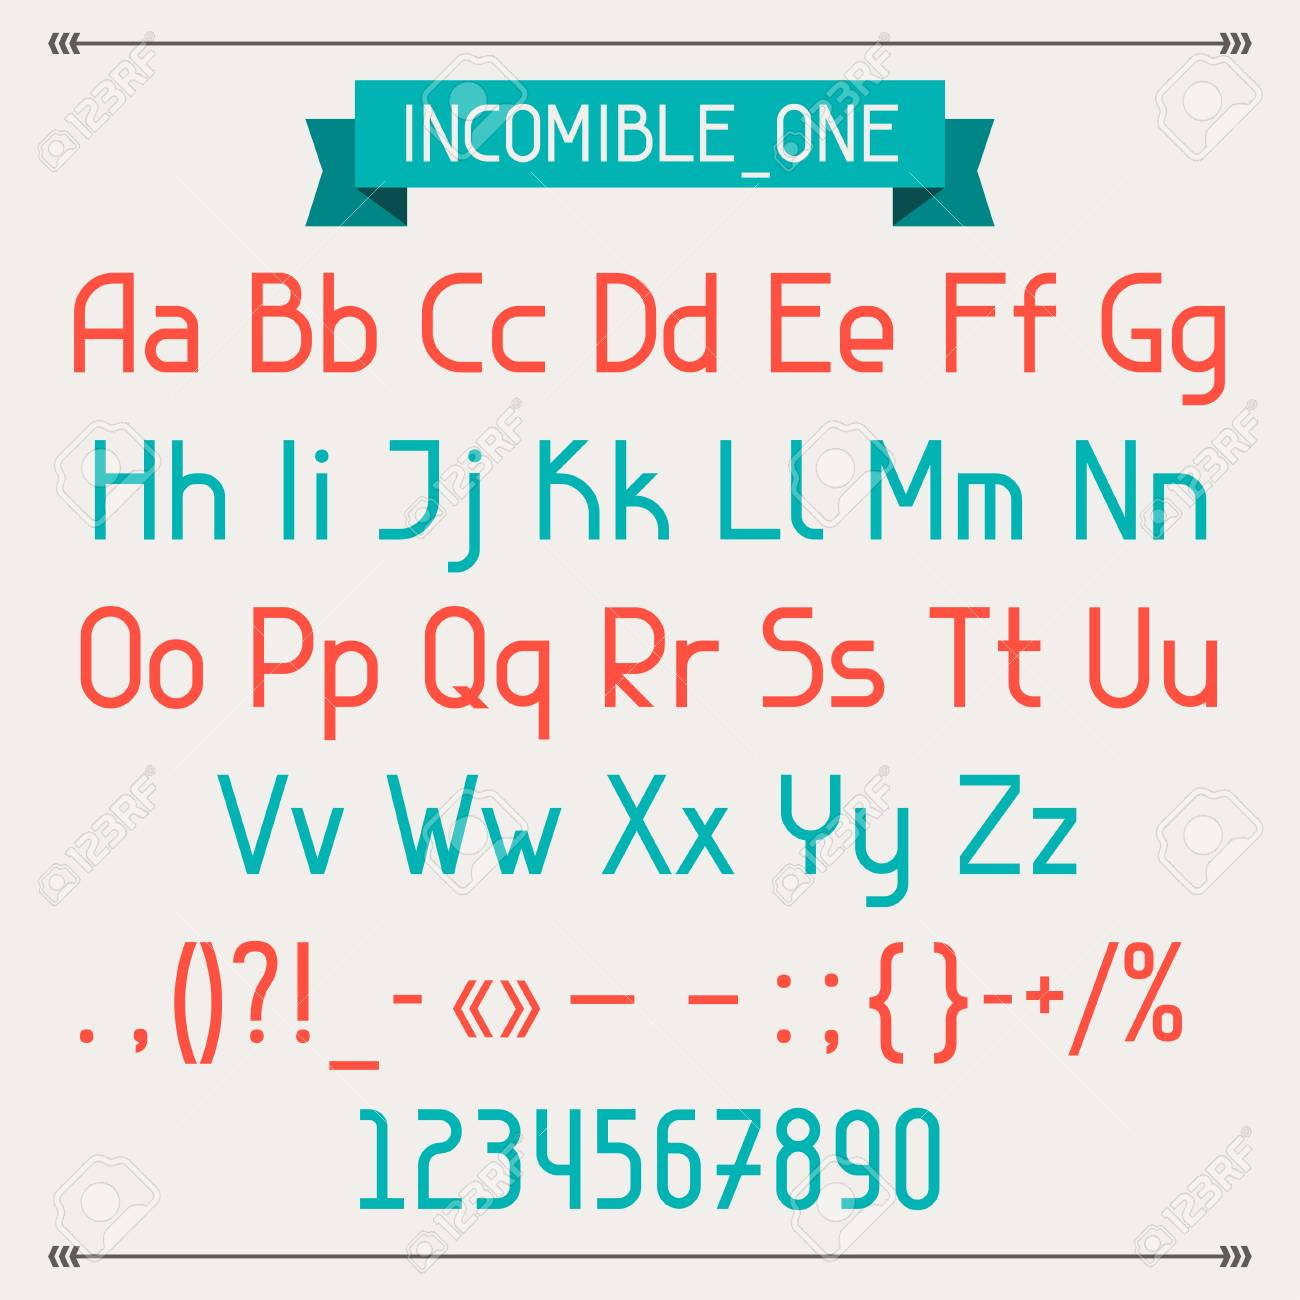 Incomible one classic style font. Stock Vector - 20481874